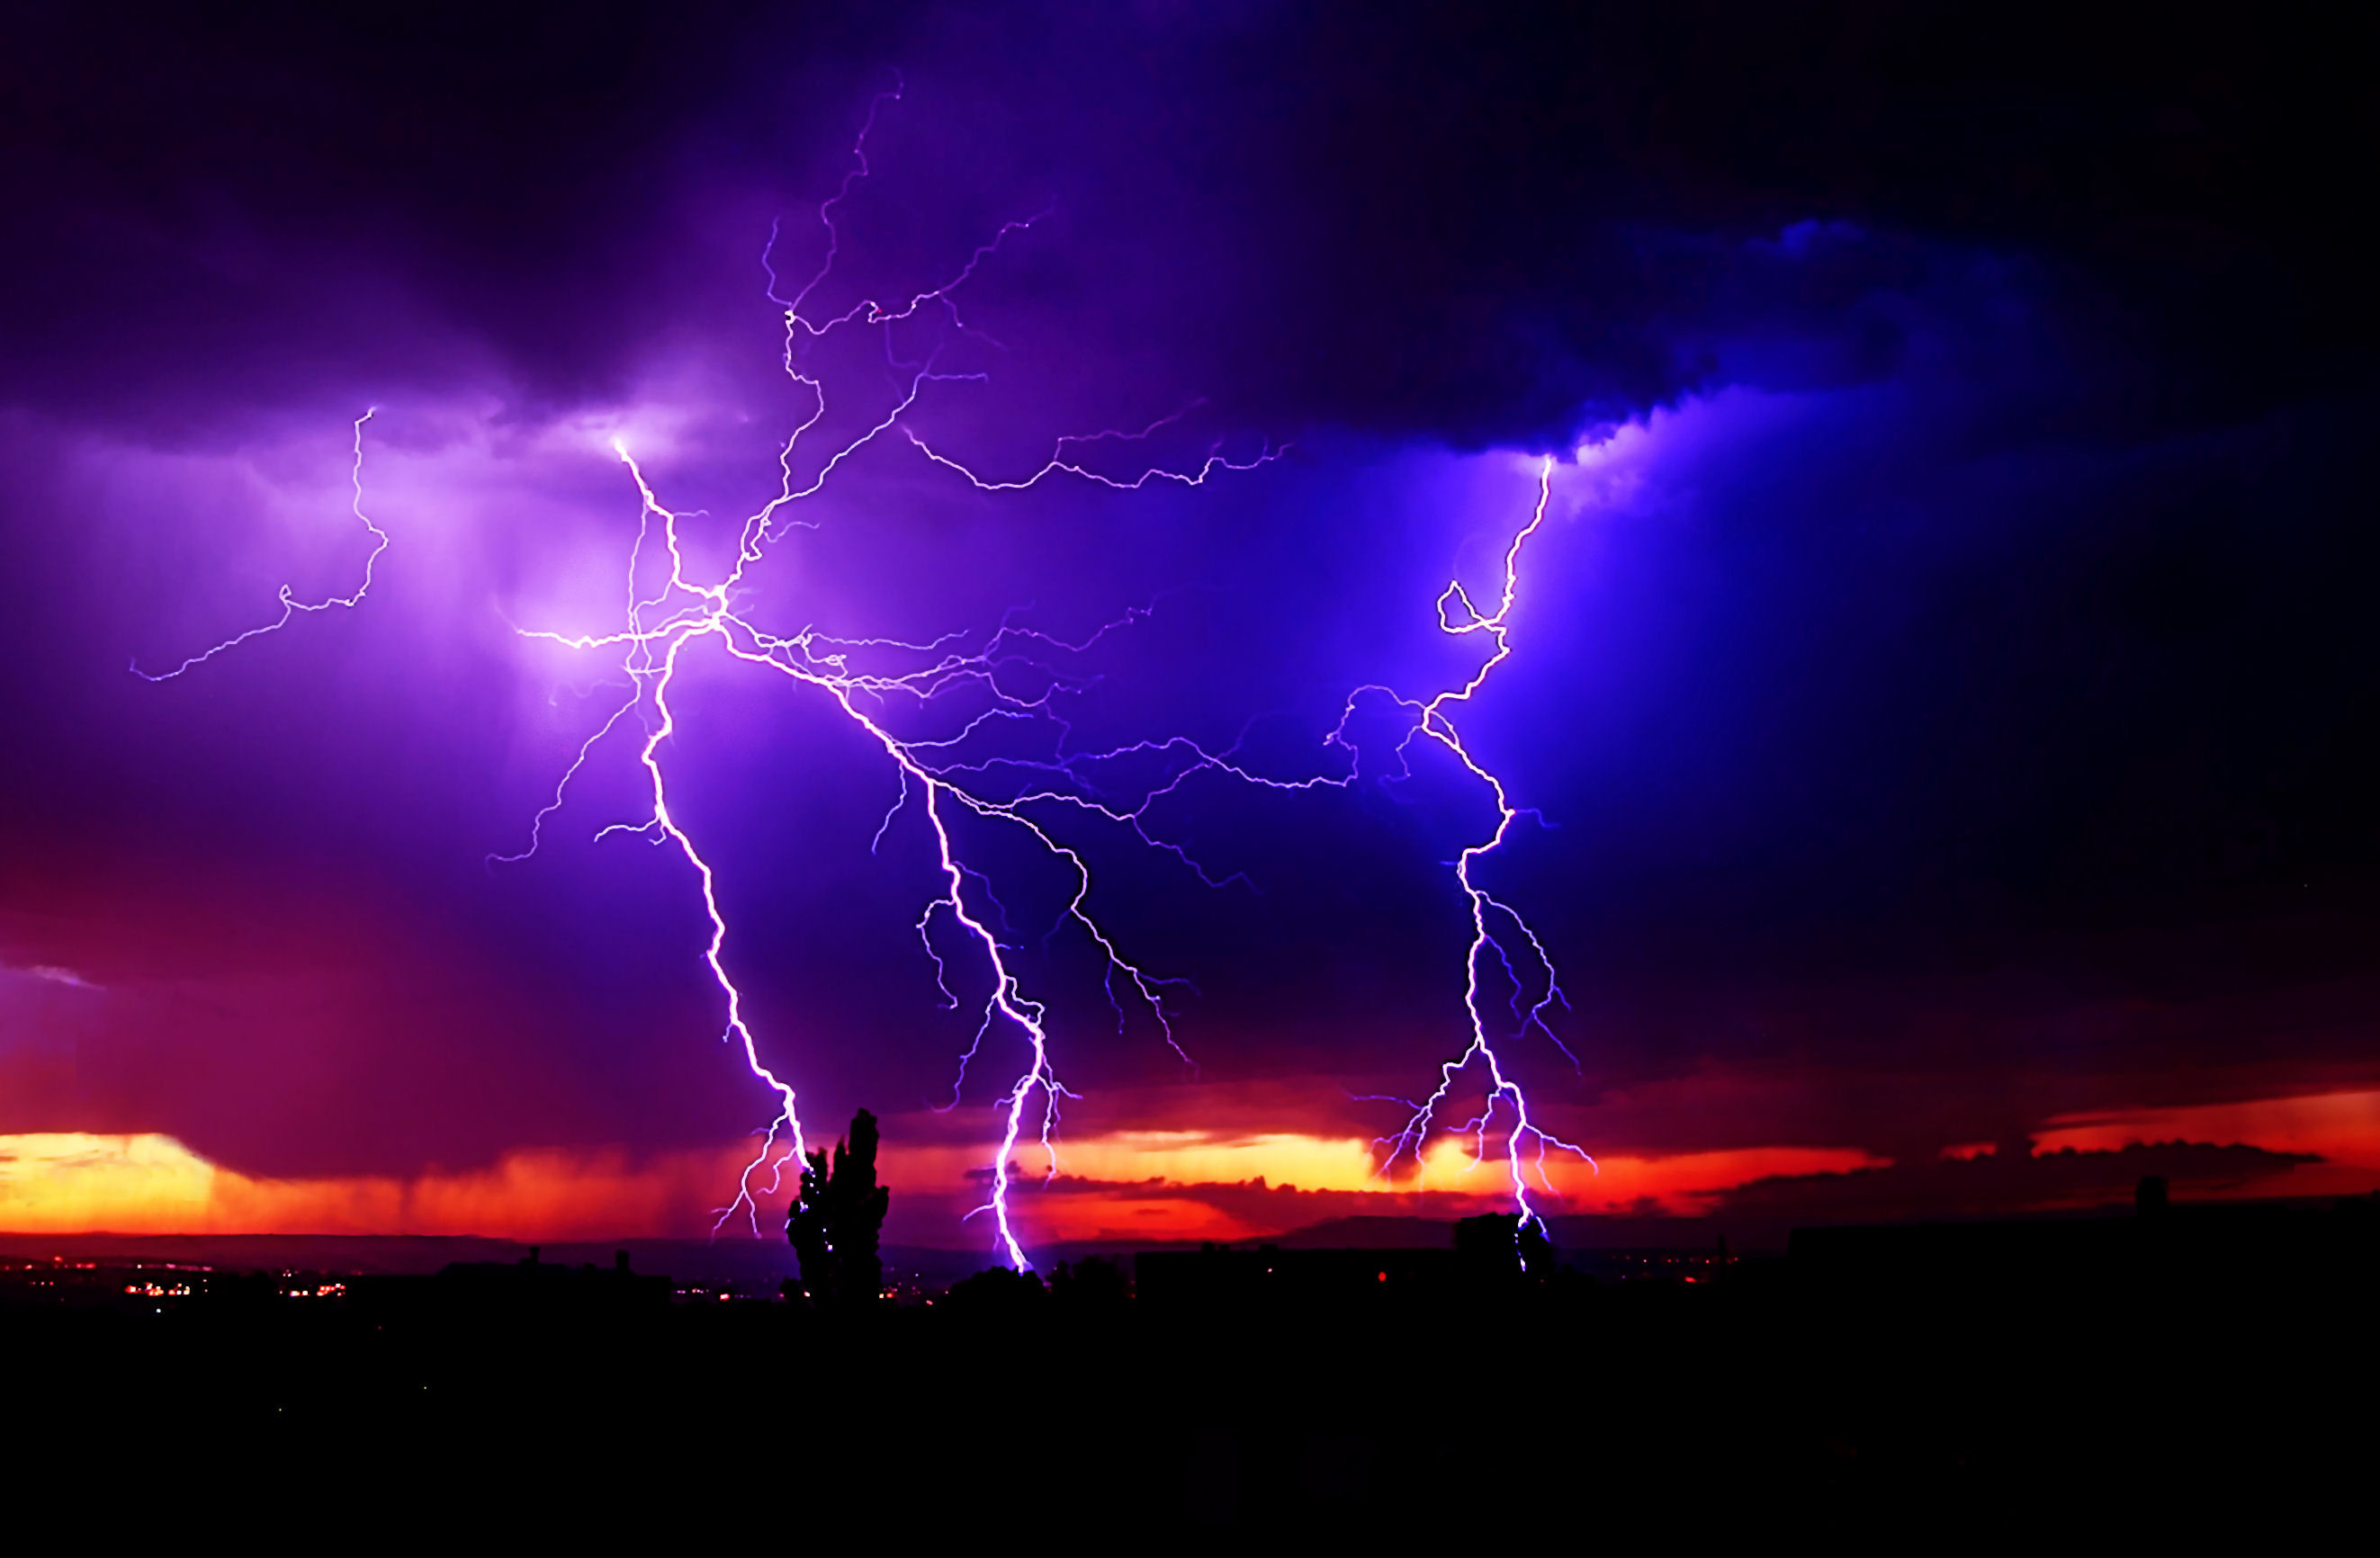 Lightning Storms for your Desktop Wallpaper | Thomas Craig Consulting .